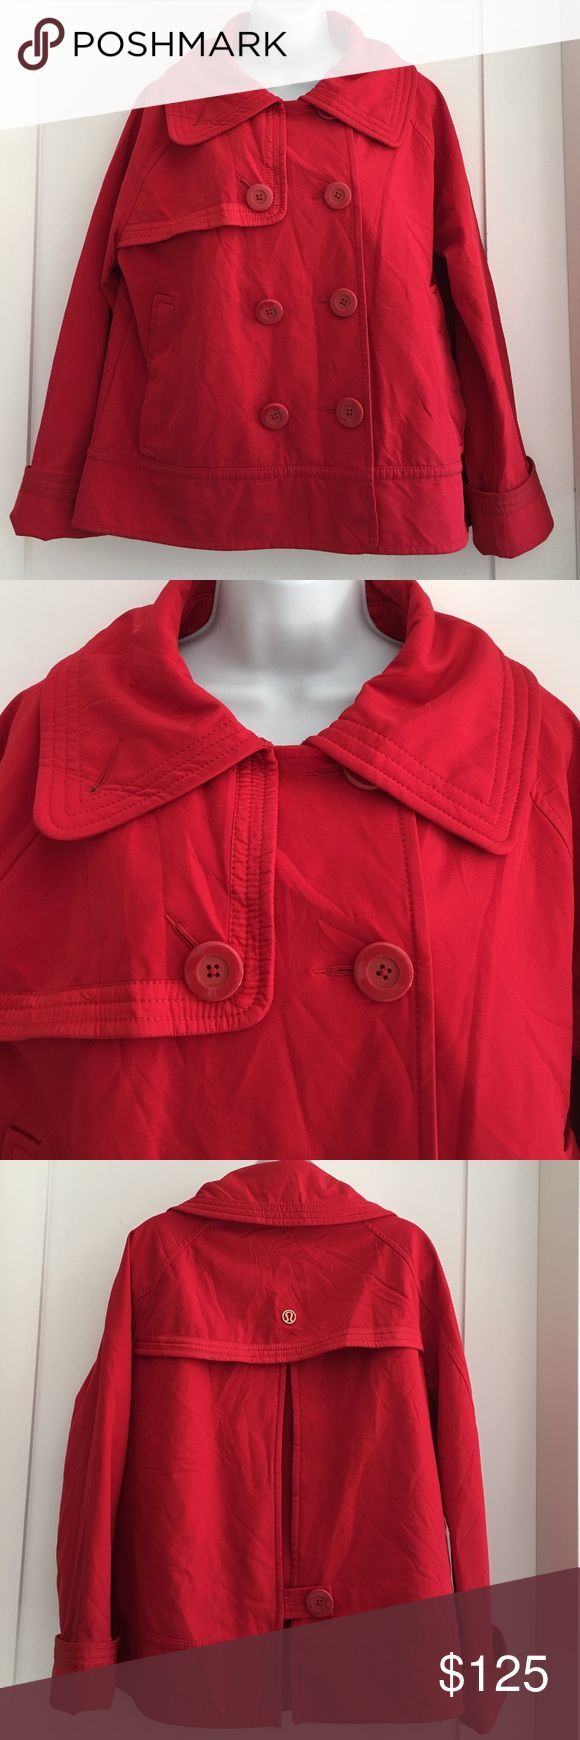 Lululemon Red Coat Jacket size 12 Preowned amazing authentic Lululemon Red Coat Jacket size 12. It is fleeced lined inside. Two outer and inner pockets. Signs. Of normal regular wear. Bright colors, no fading. Please look at pictures for better reference. Happy shopping!! lululemon athletica Jackets & Coats